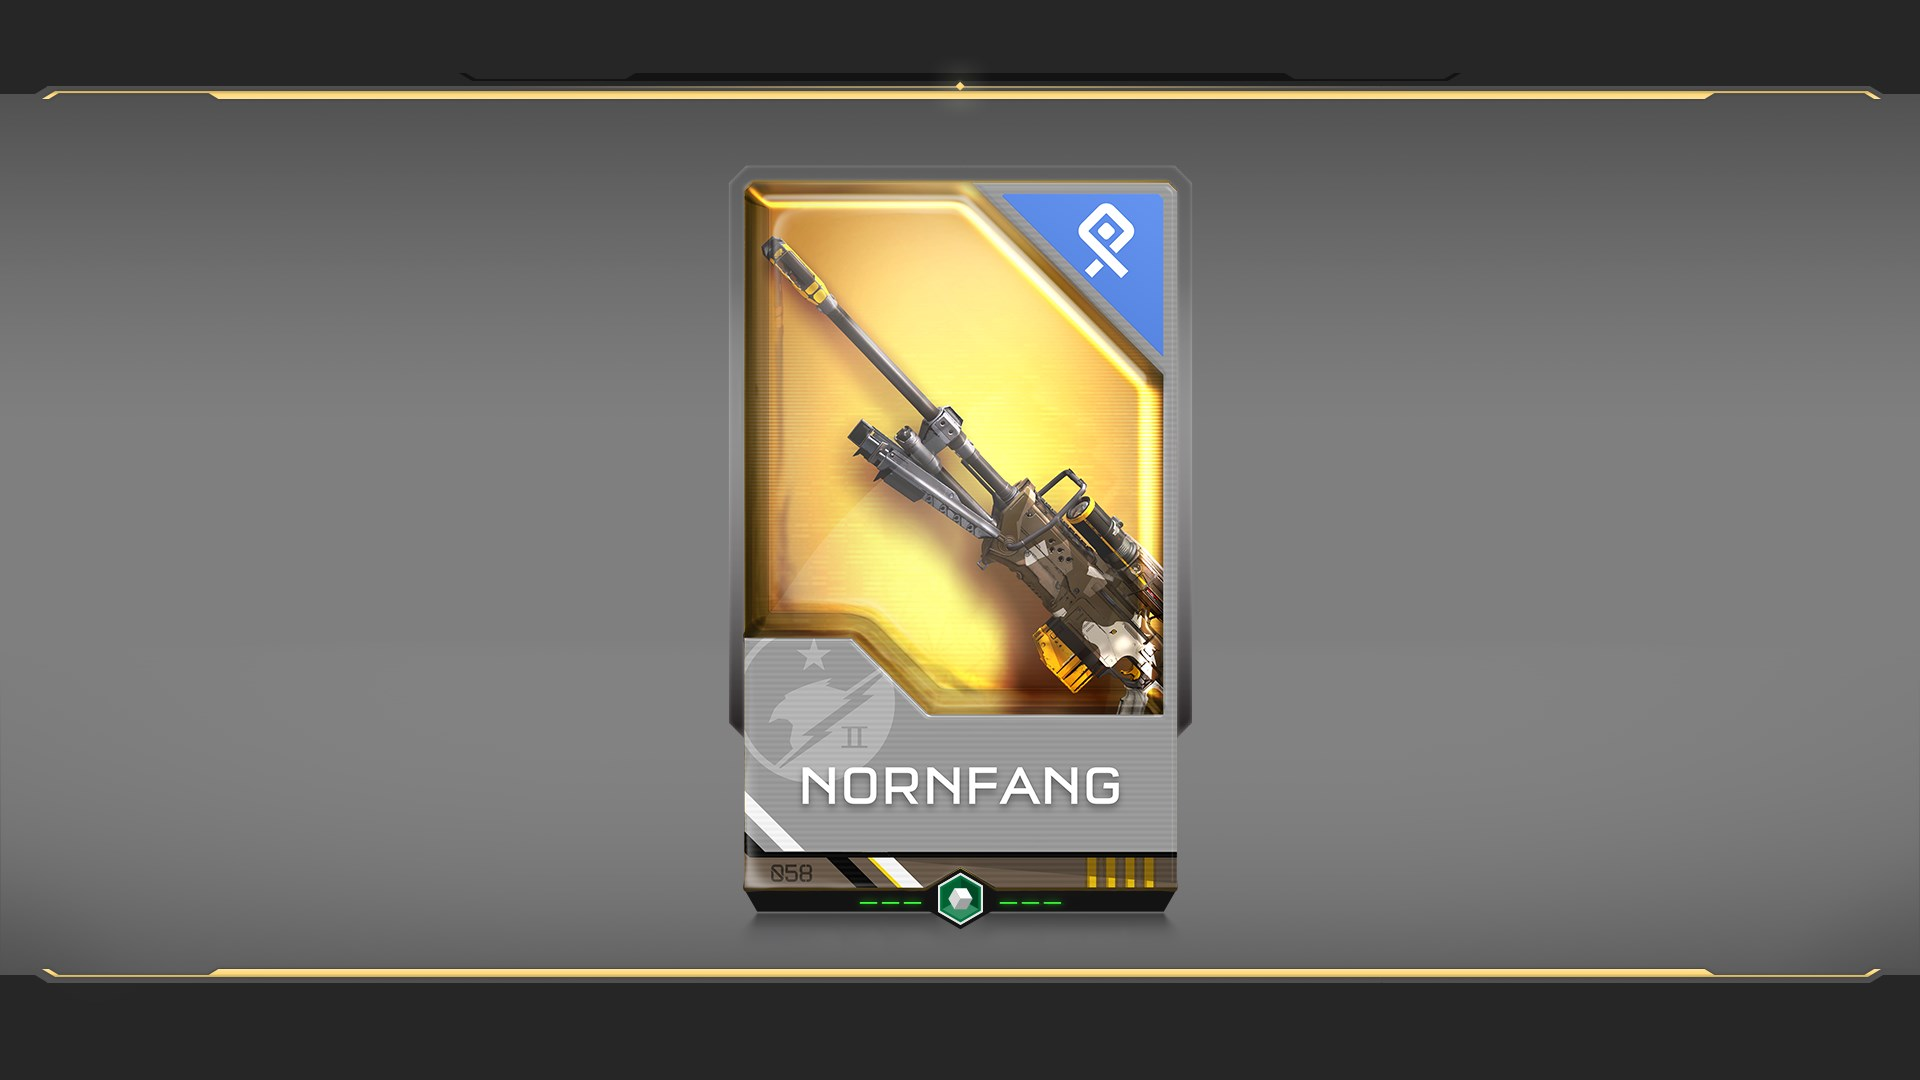 Halo 5: Guardians – Nornfang Mythic REQ Pack